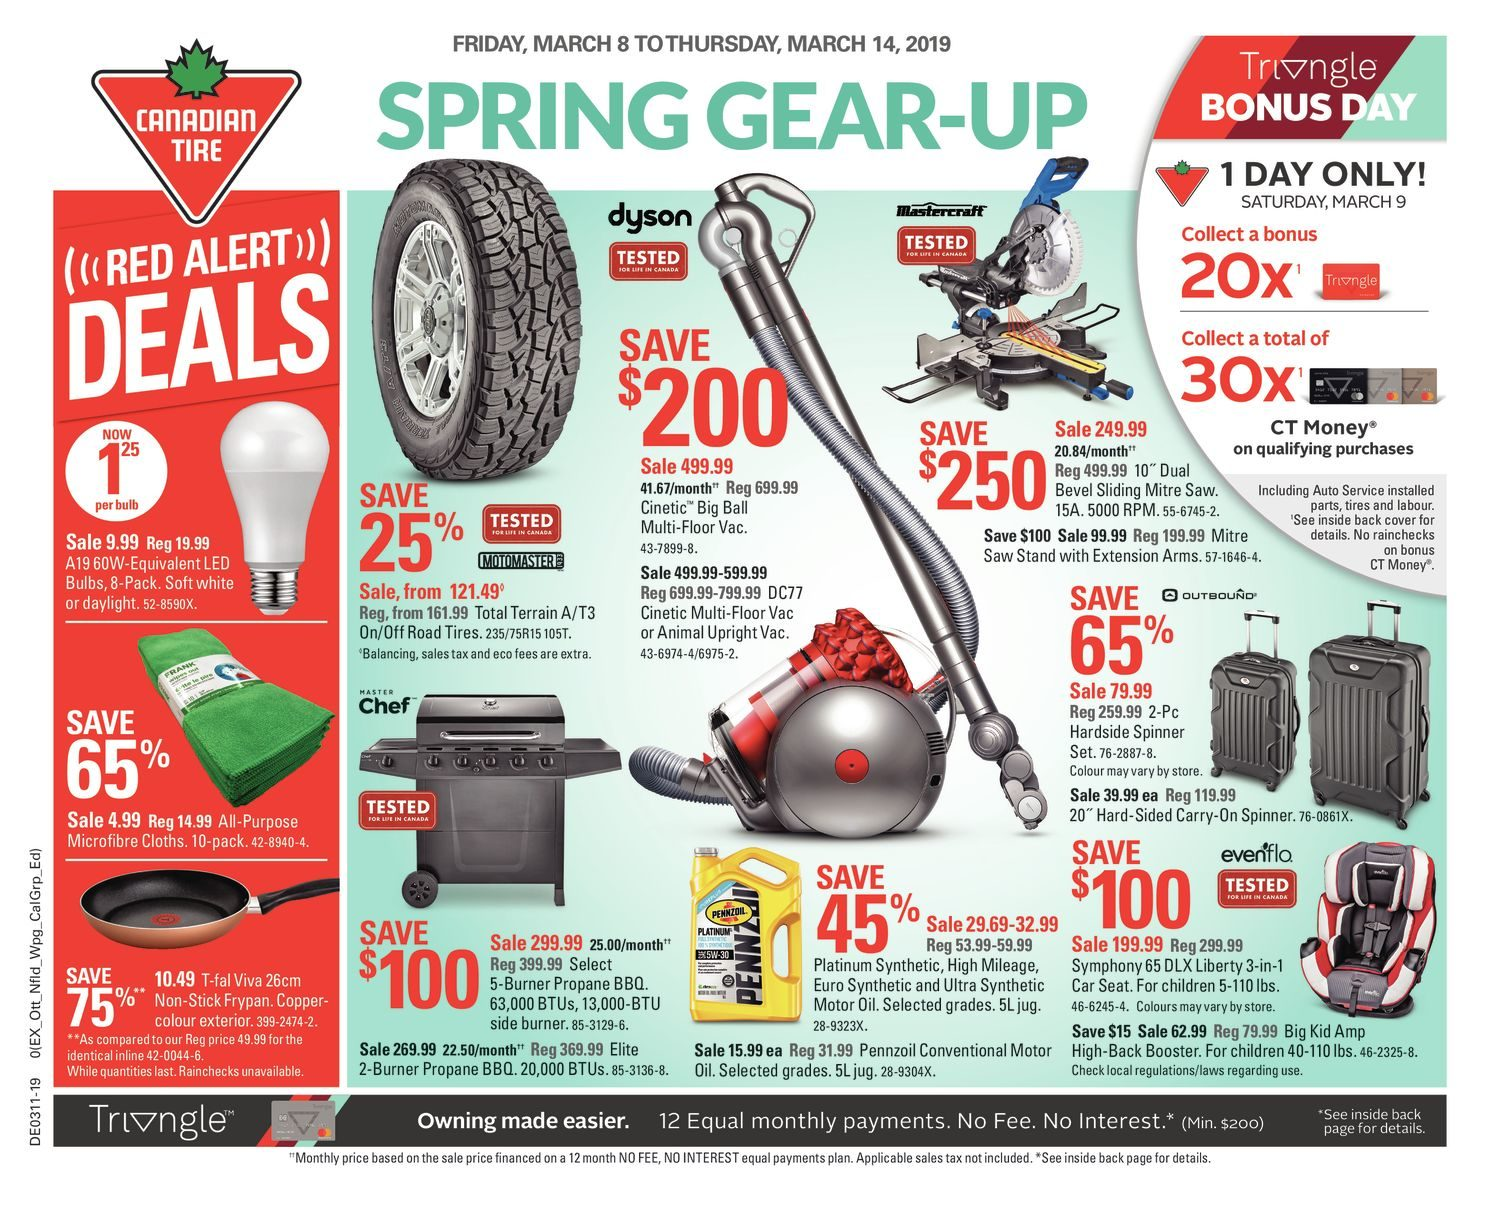 Canadian Tire Weekly Flyer Weekly Spring Gear Up Mar 8